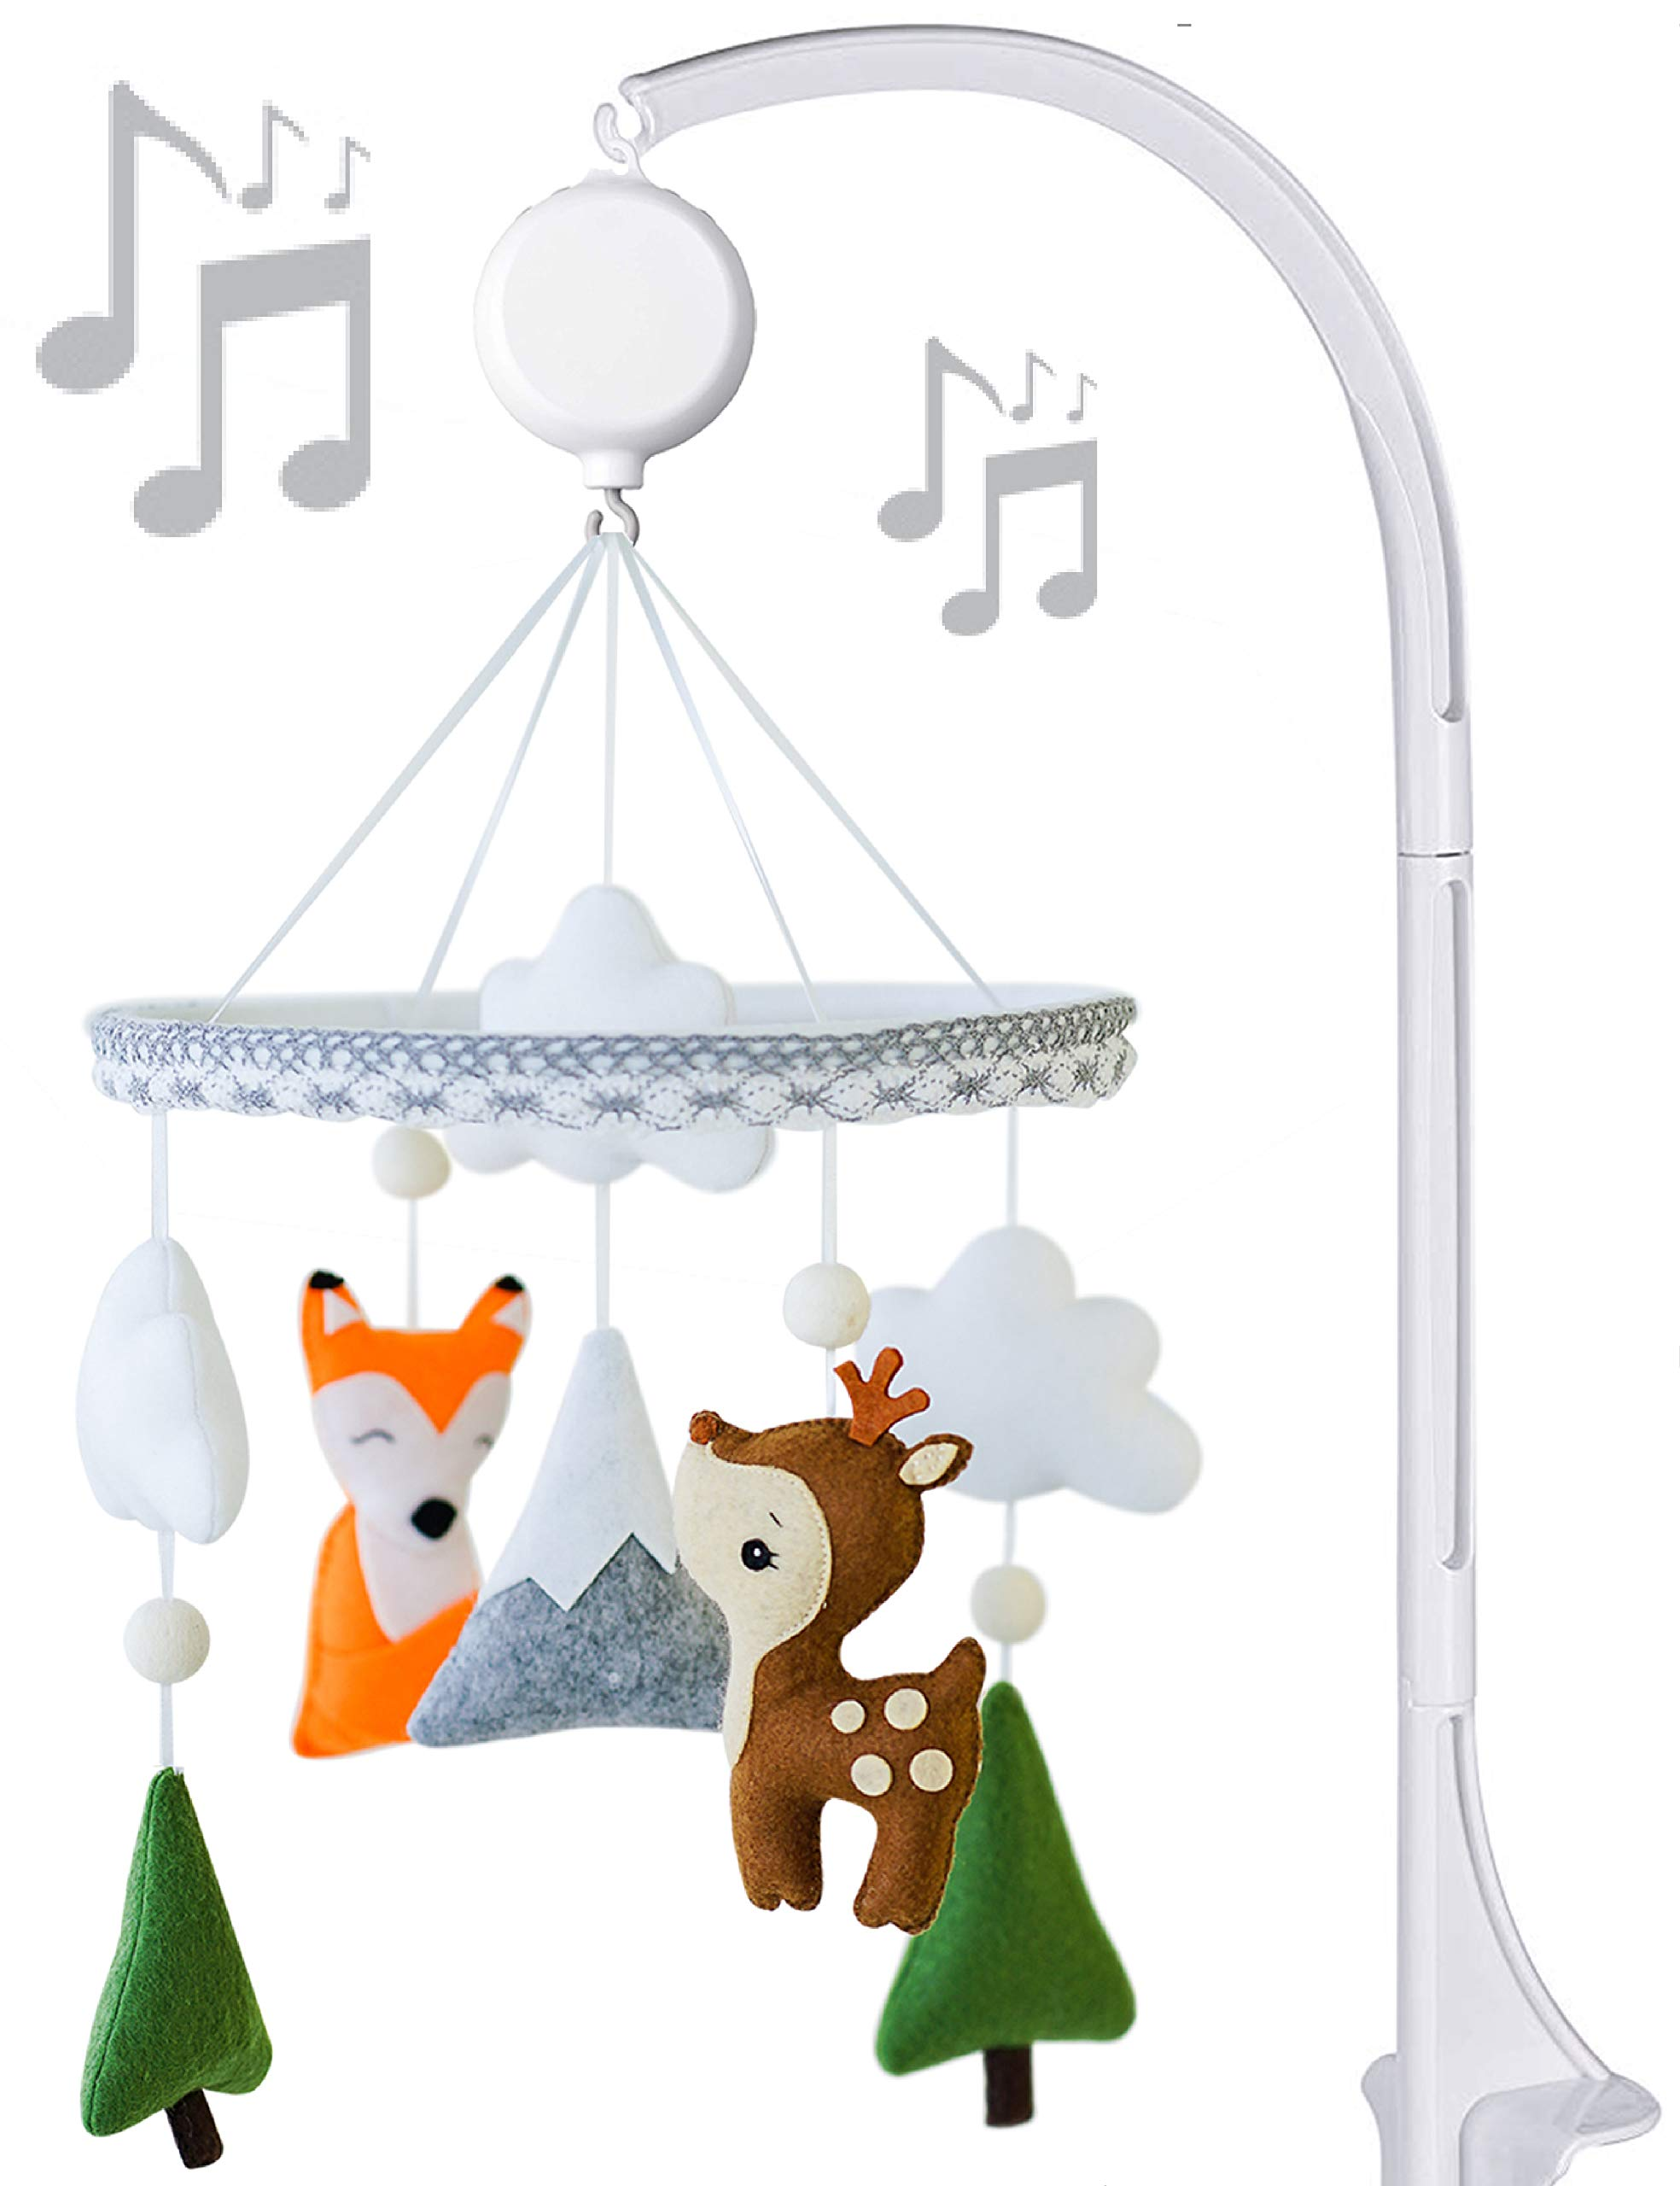 Music Baby Mobile with Crib arm Felt Handmade Baby Shower Gift for Girl or Boy (Woodland) by ARTISTRO